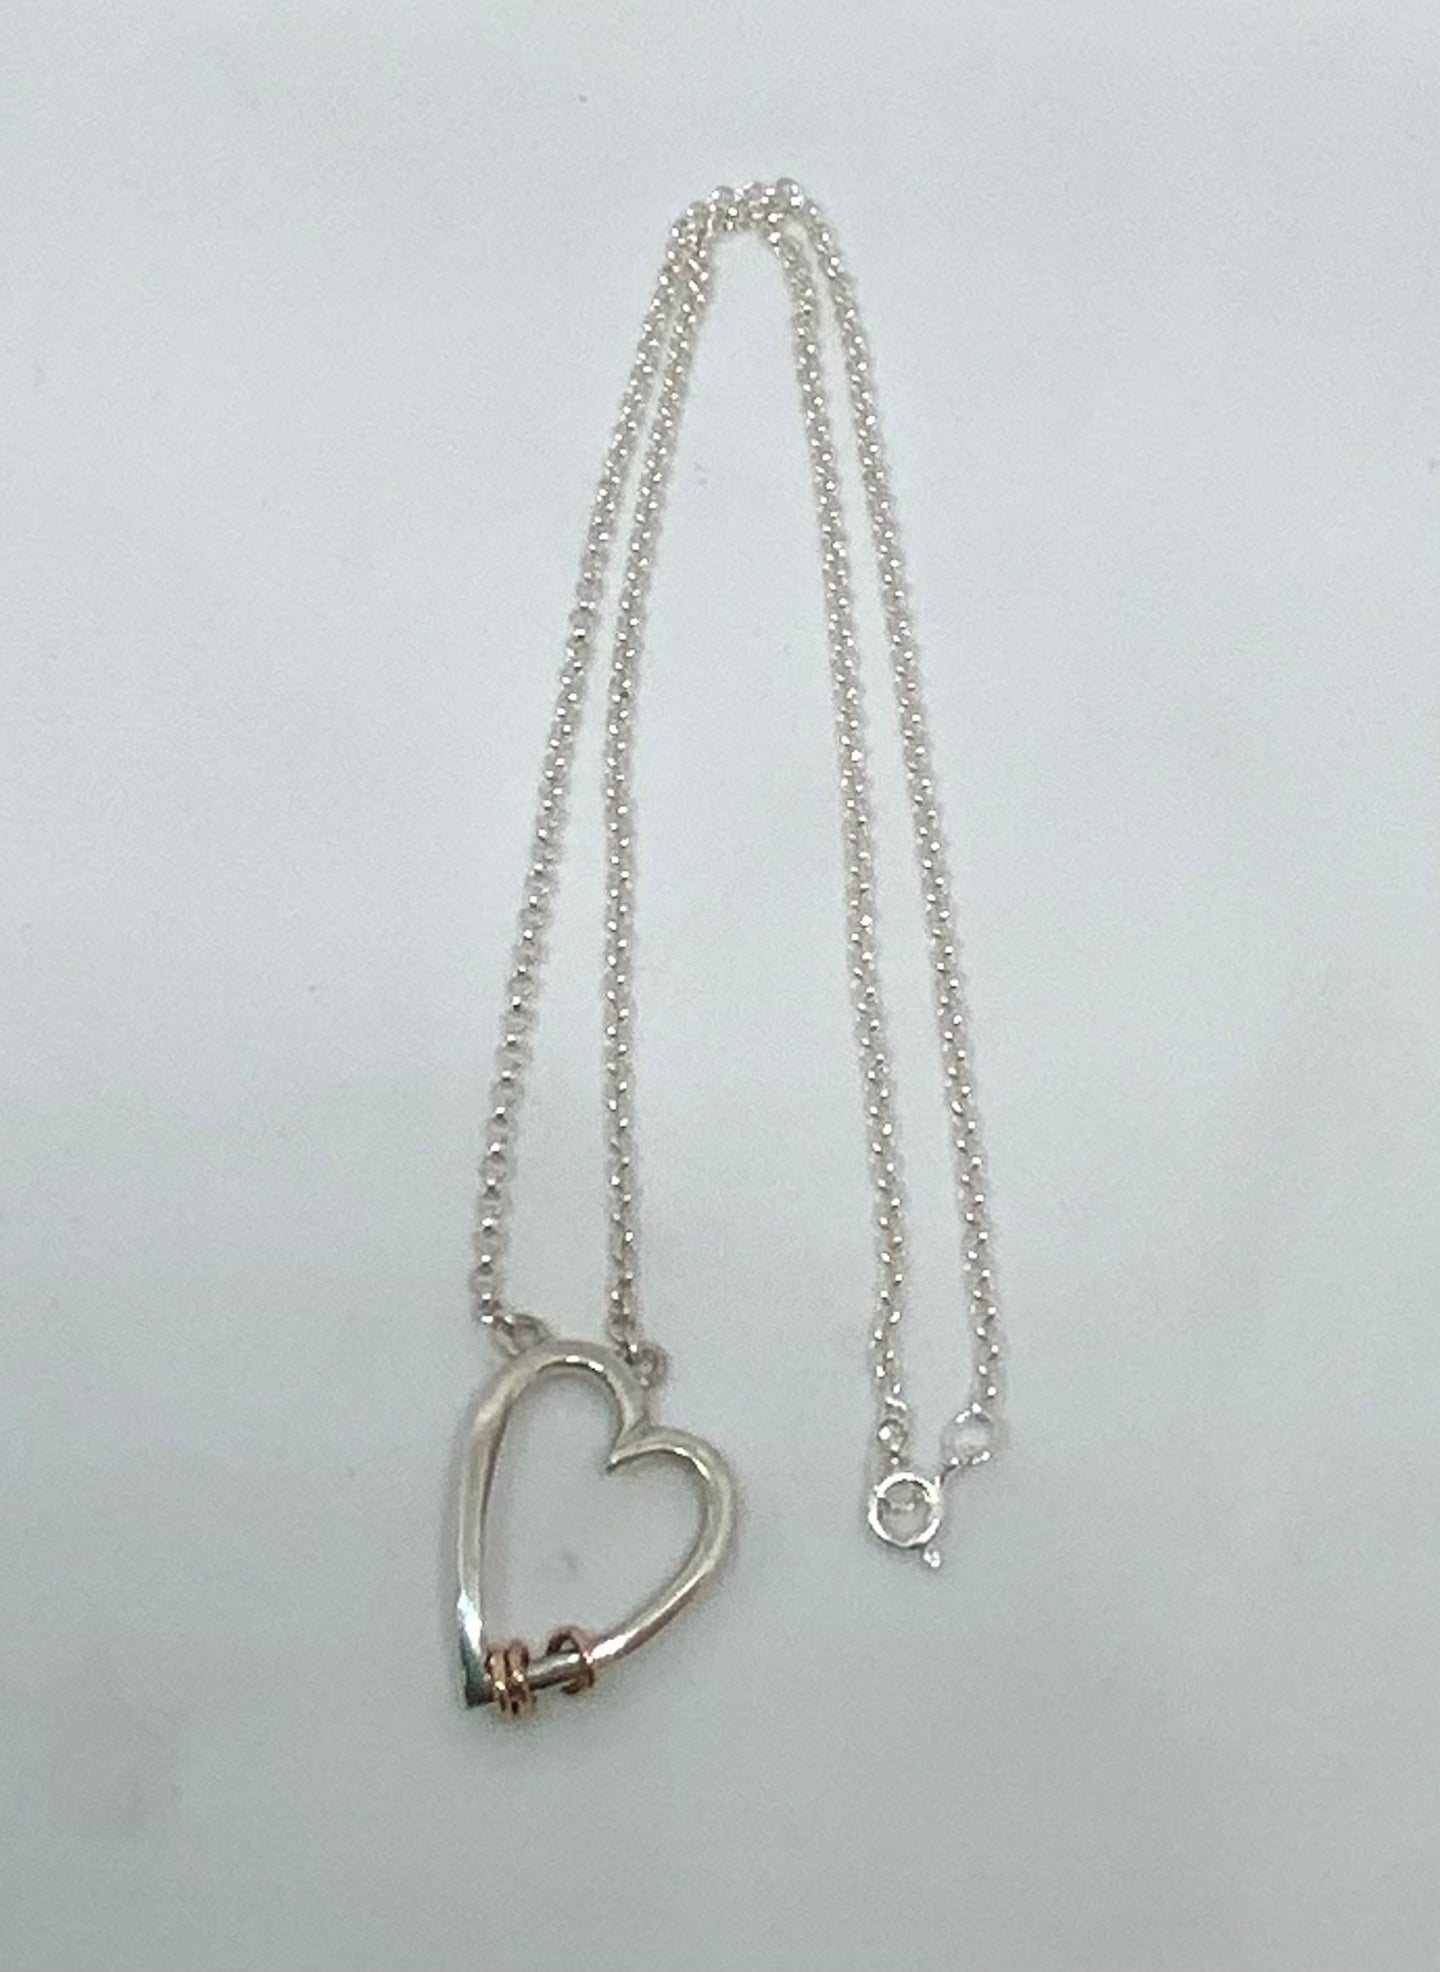 Sterling Silver Heart Necklace with Gold Rings handmade by James